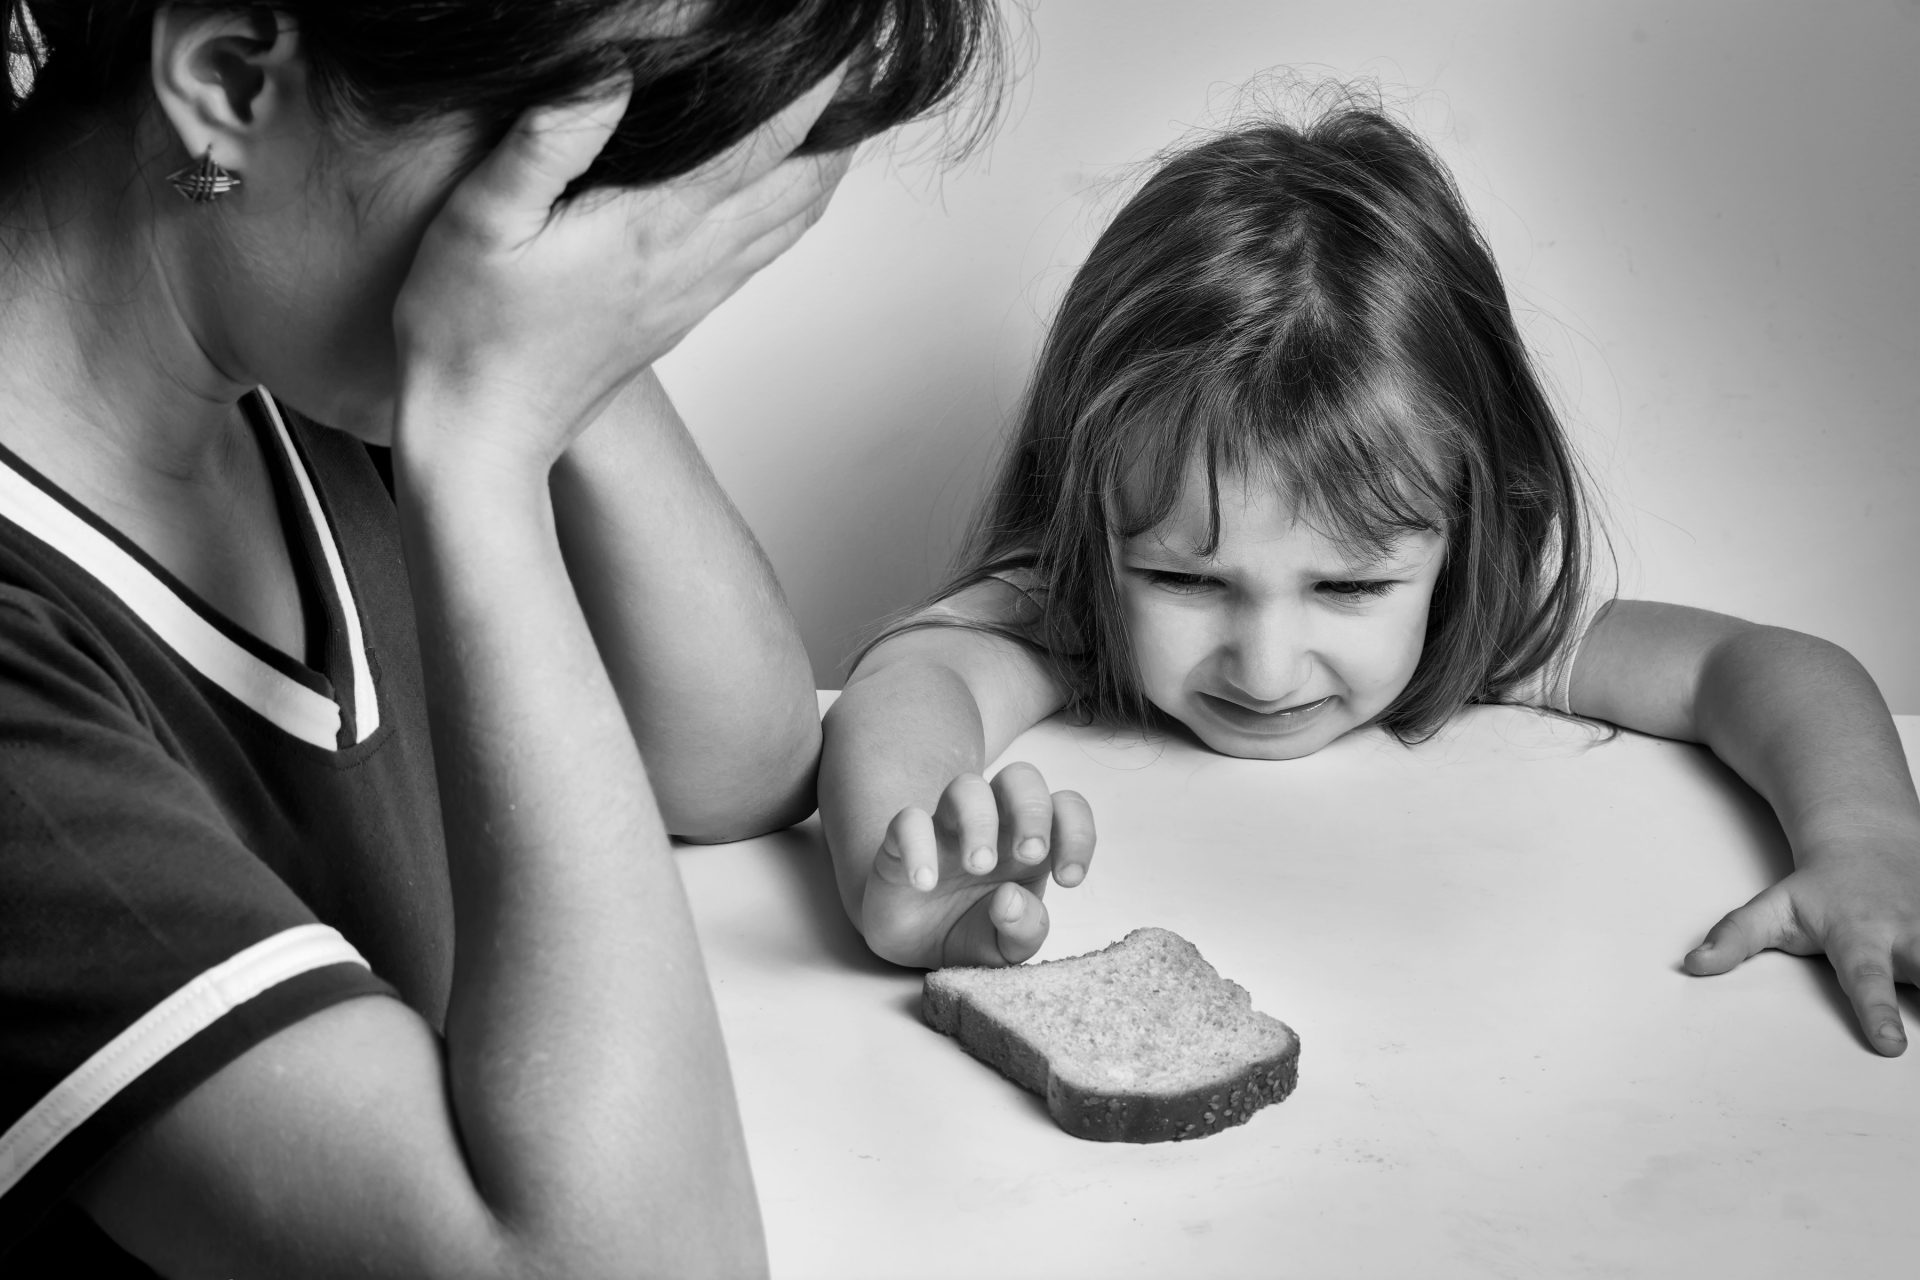 Holiday hunger: A major issue for families